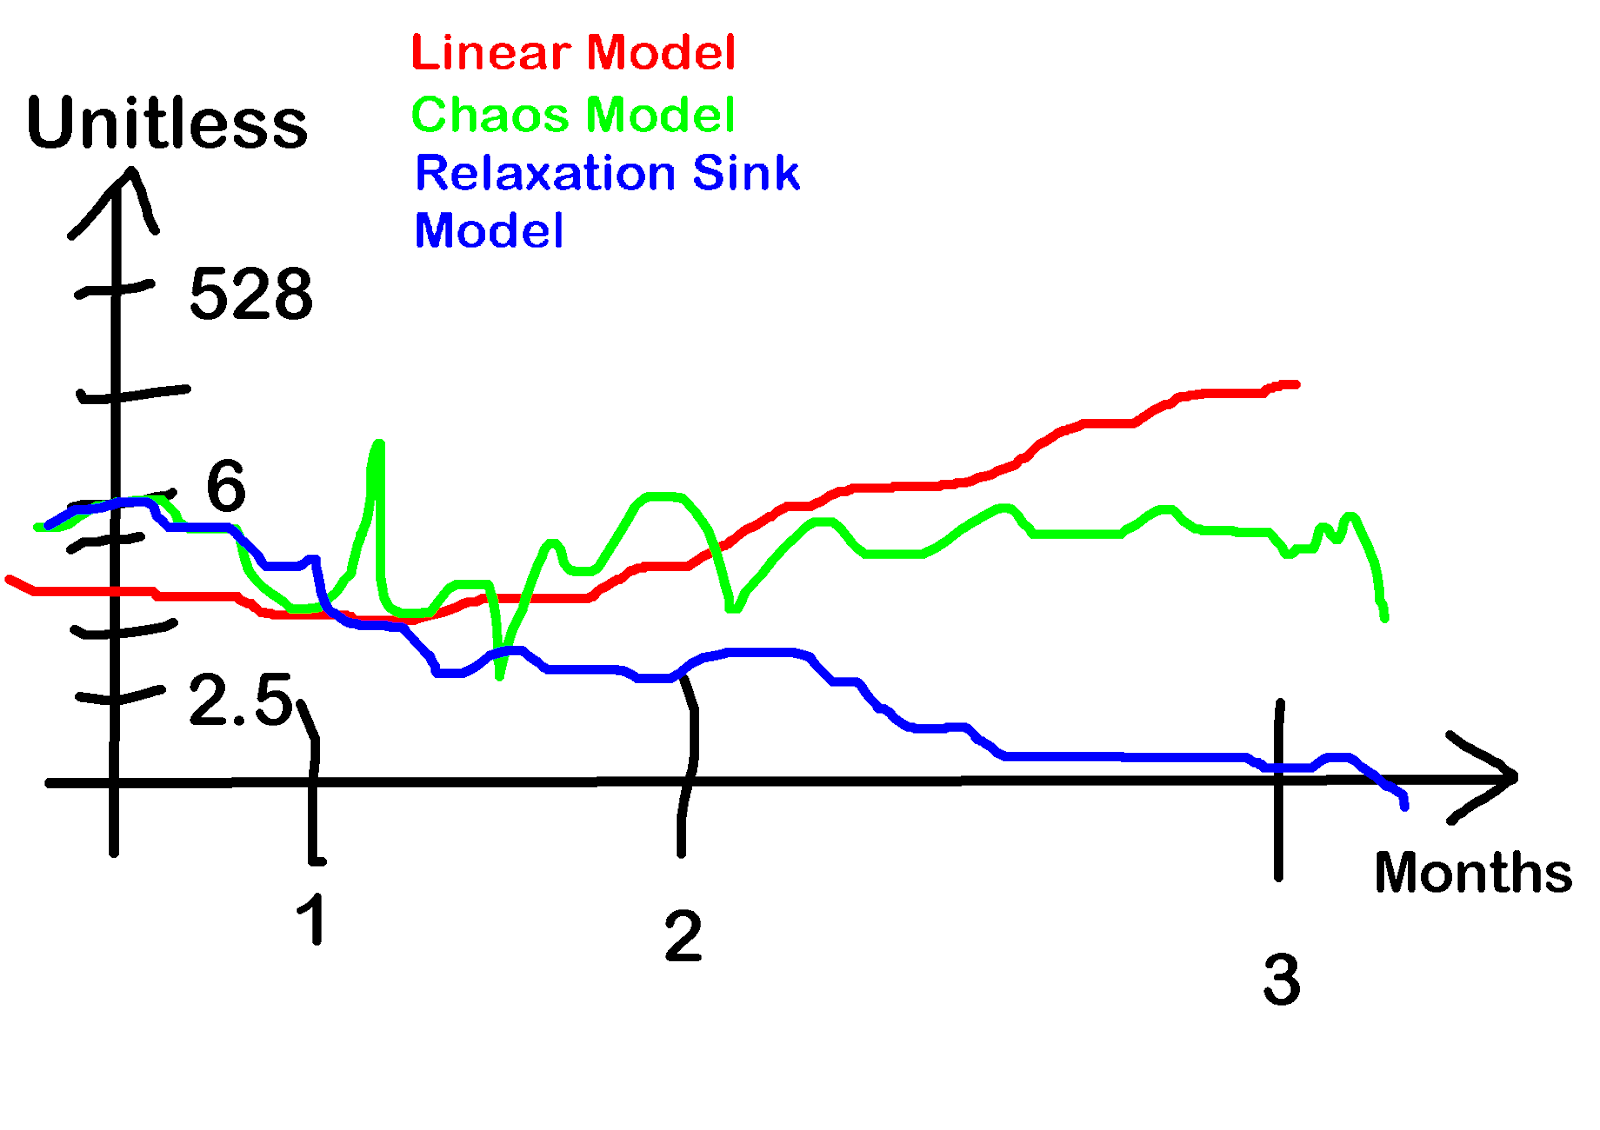 Work Accomplished in some Unitless metric blindly Dimension reduced with PCA (Principal Component Analysis)